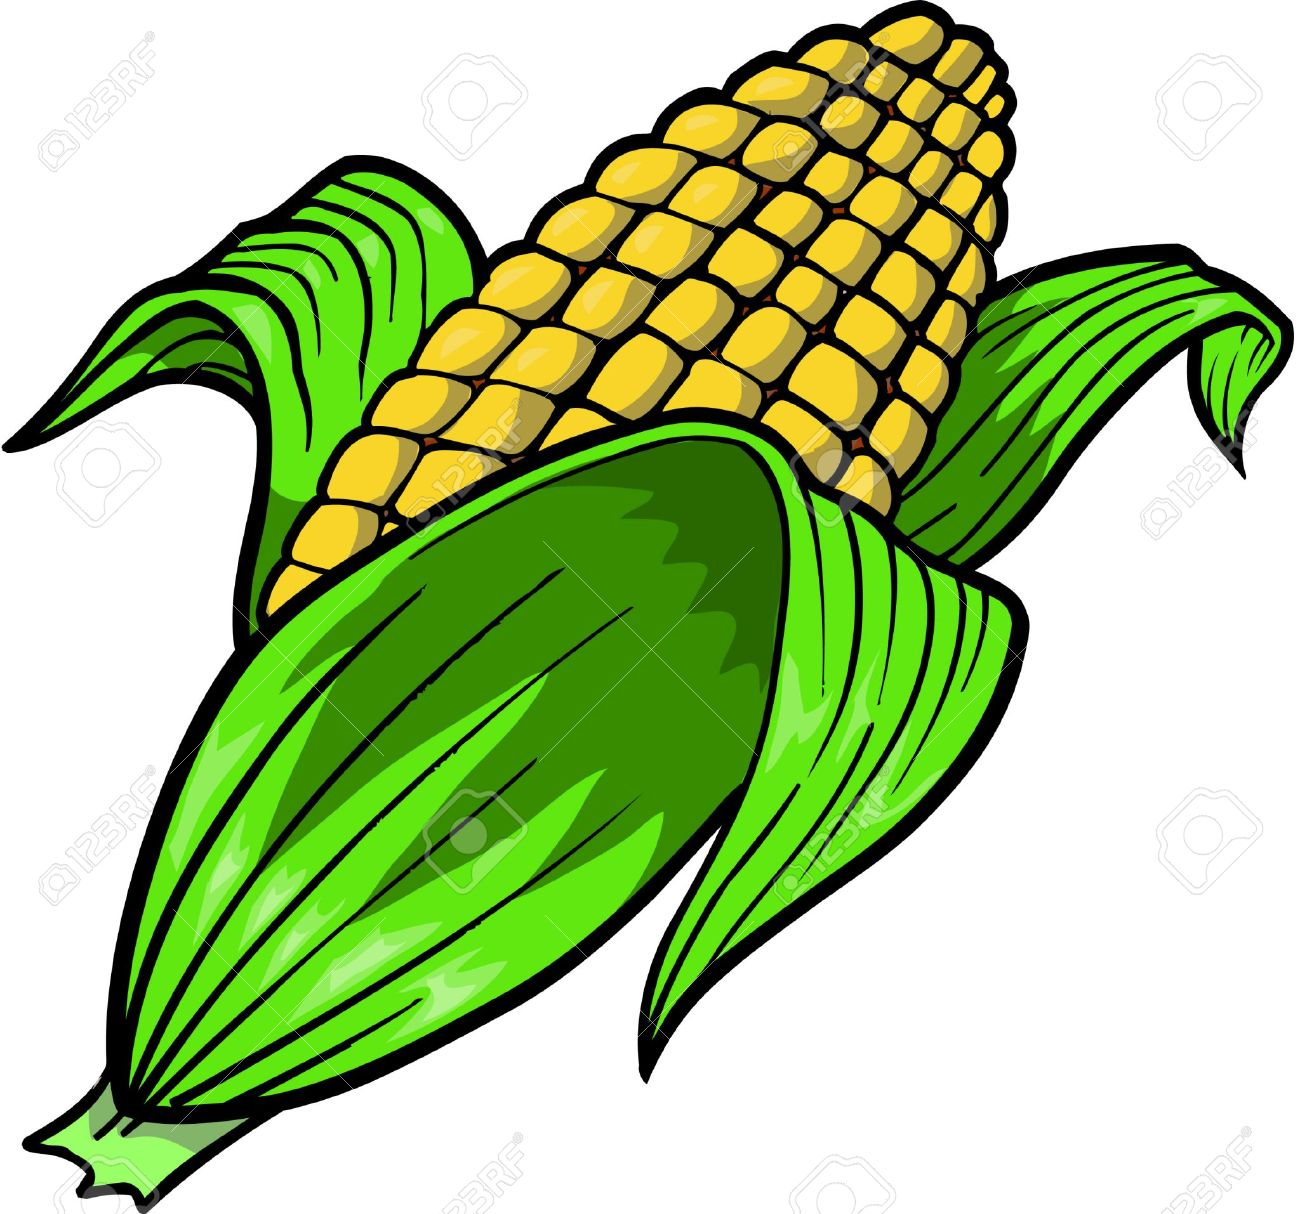 Cornfield clipart crop field Free corn%20clipart Corn Clipart Images